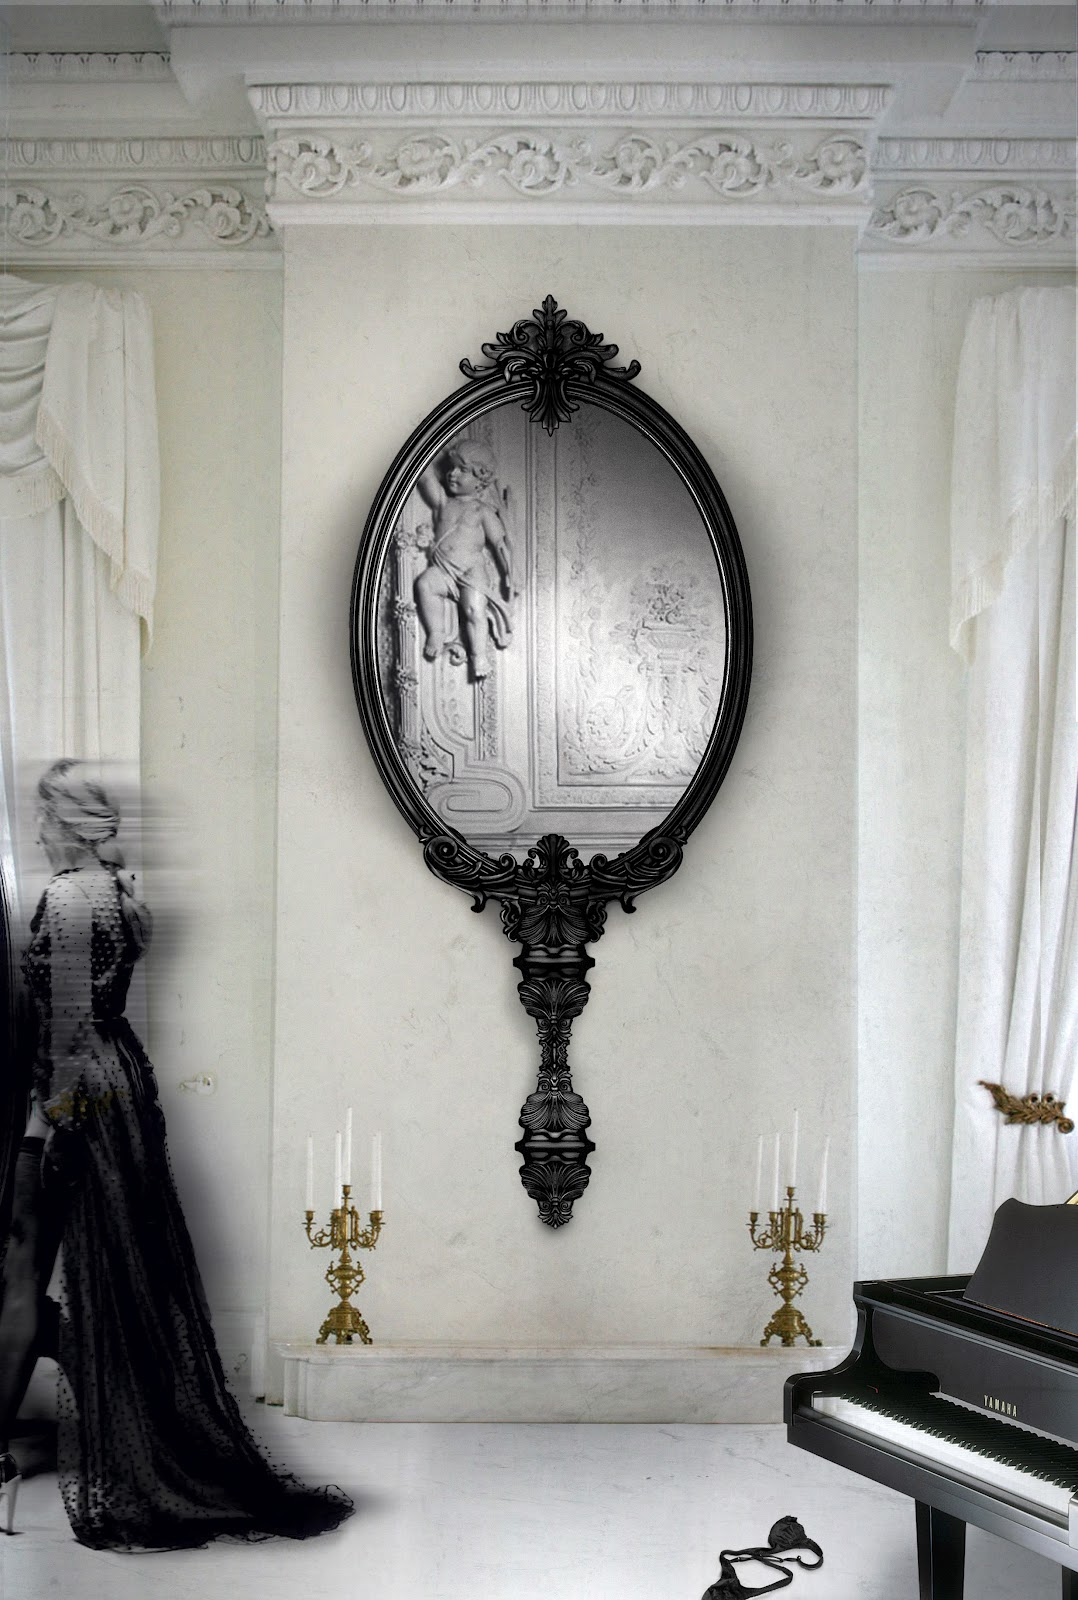 The Most Beautiful Wall Mirror Designs for Your Living Room  wall mirror designs The Most Beautiful Wall Mirror Designs for Your Living Room The Most Beautiful Wall Mirror Designs for Your Living Room5